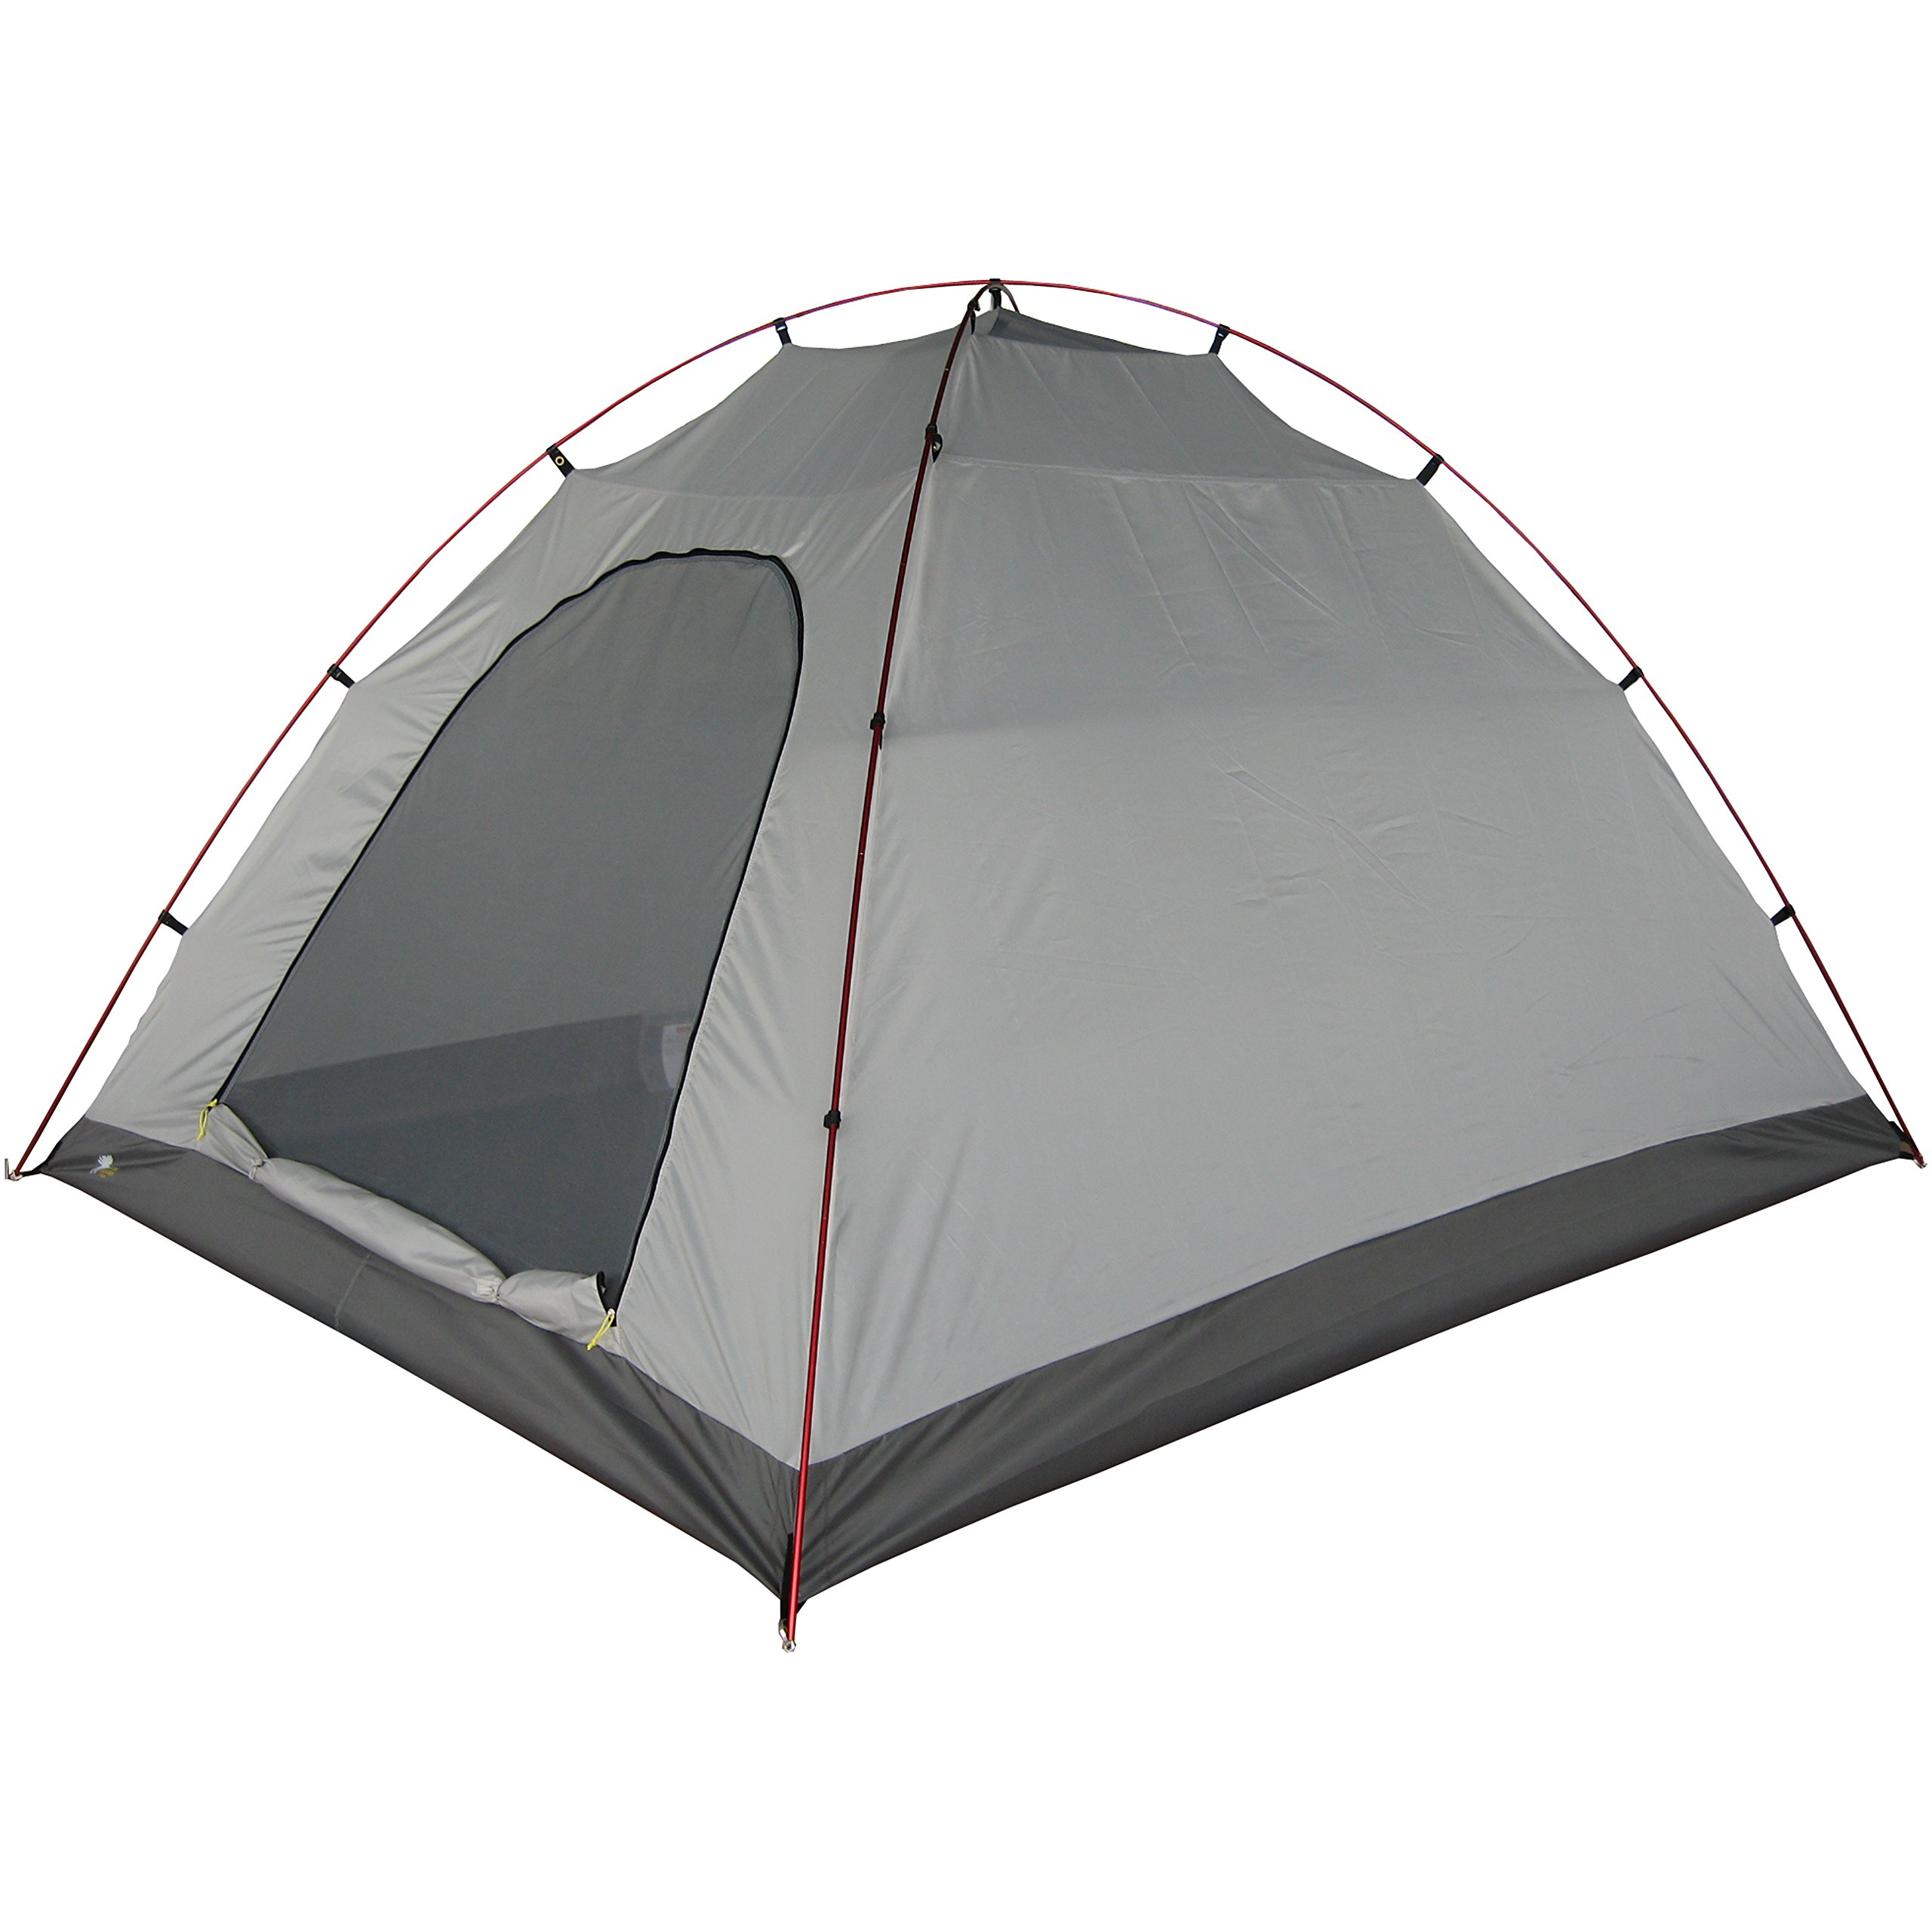 High Peak Outdoors BaseCamp 4 Person 4-Season Expedition-Quality Backpacking Tent by High Peak Outdoors (Image #2)